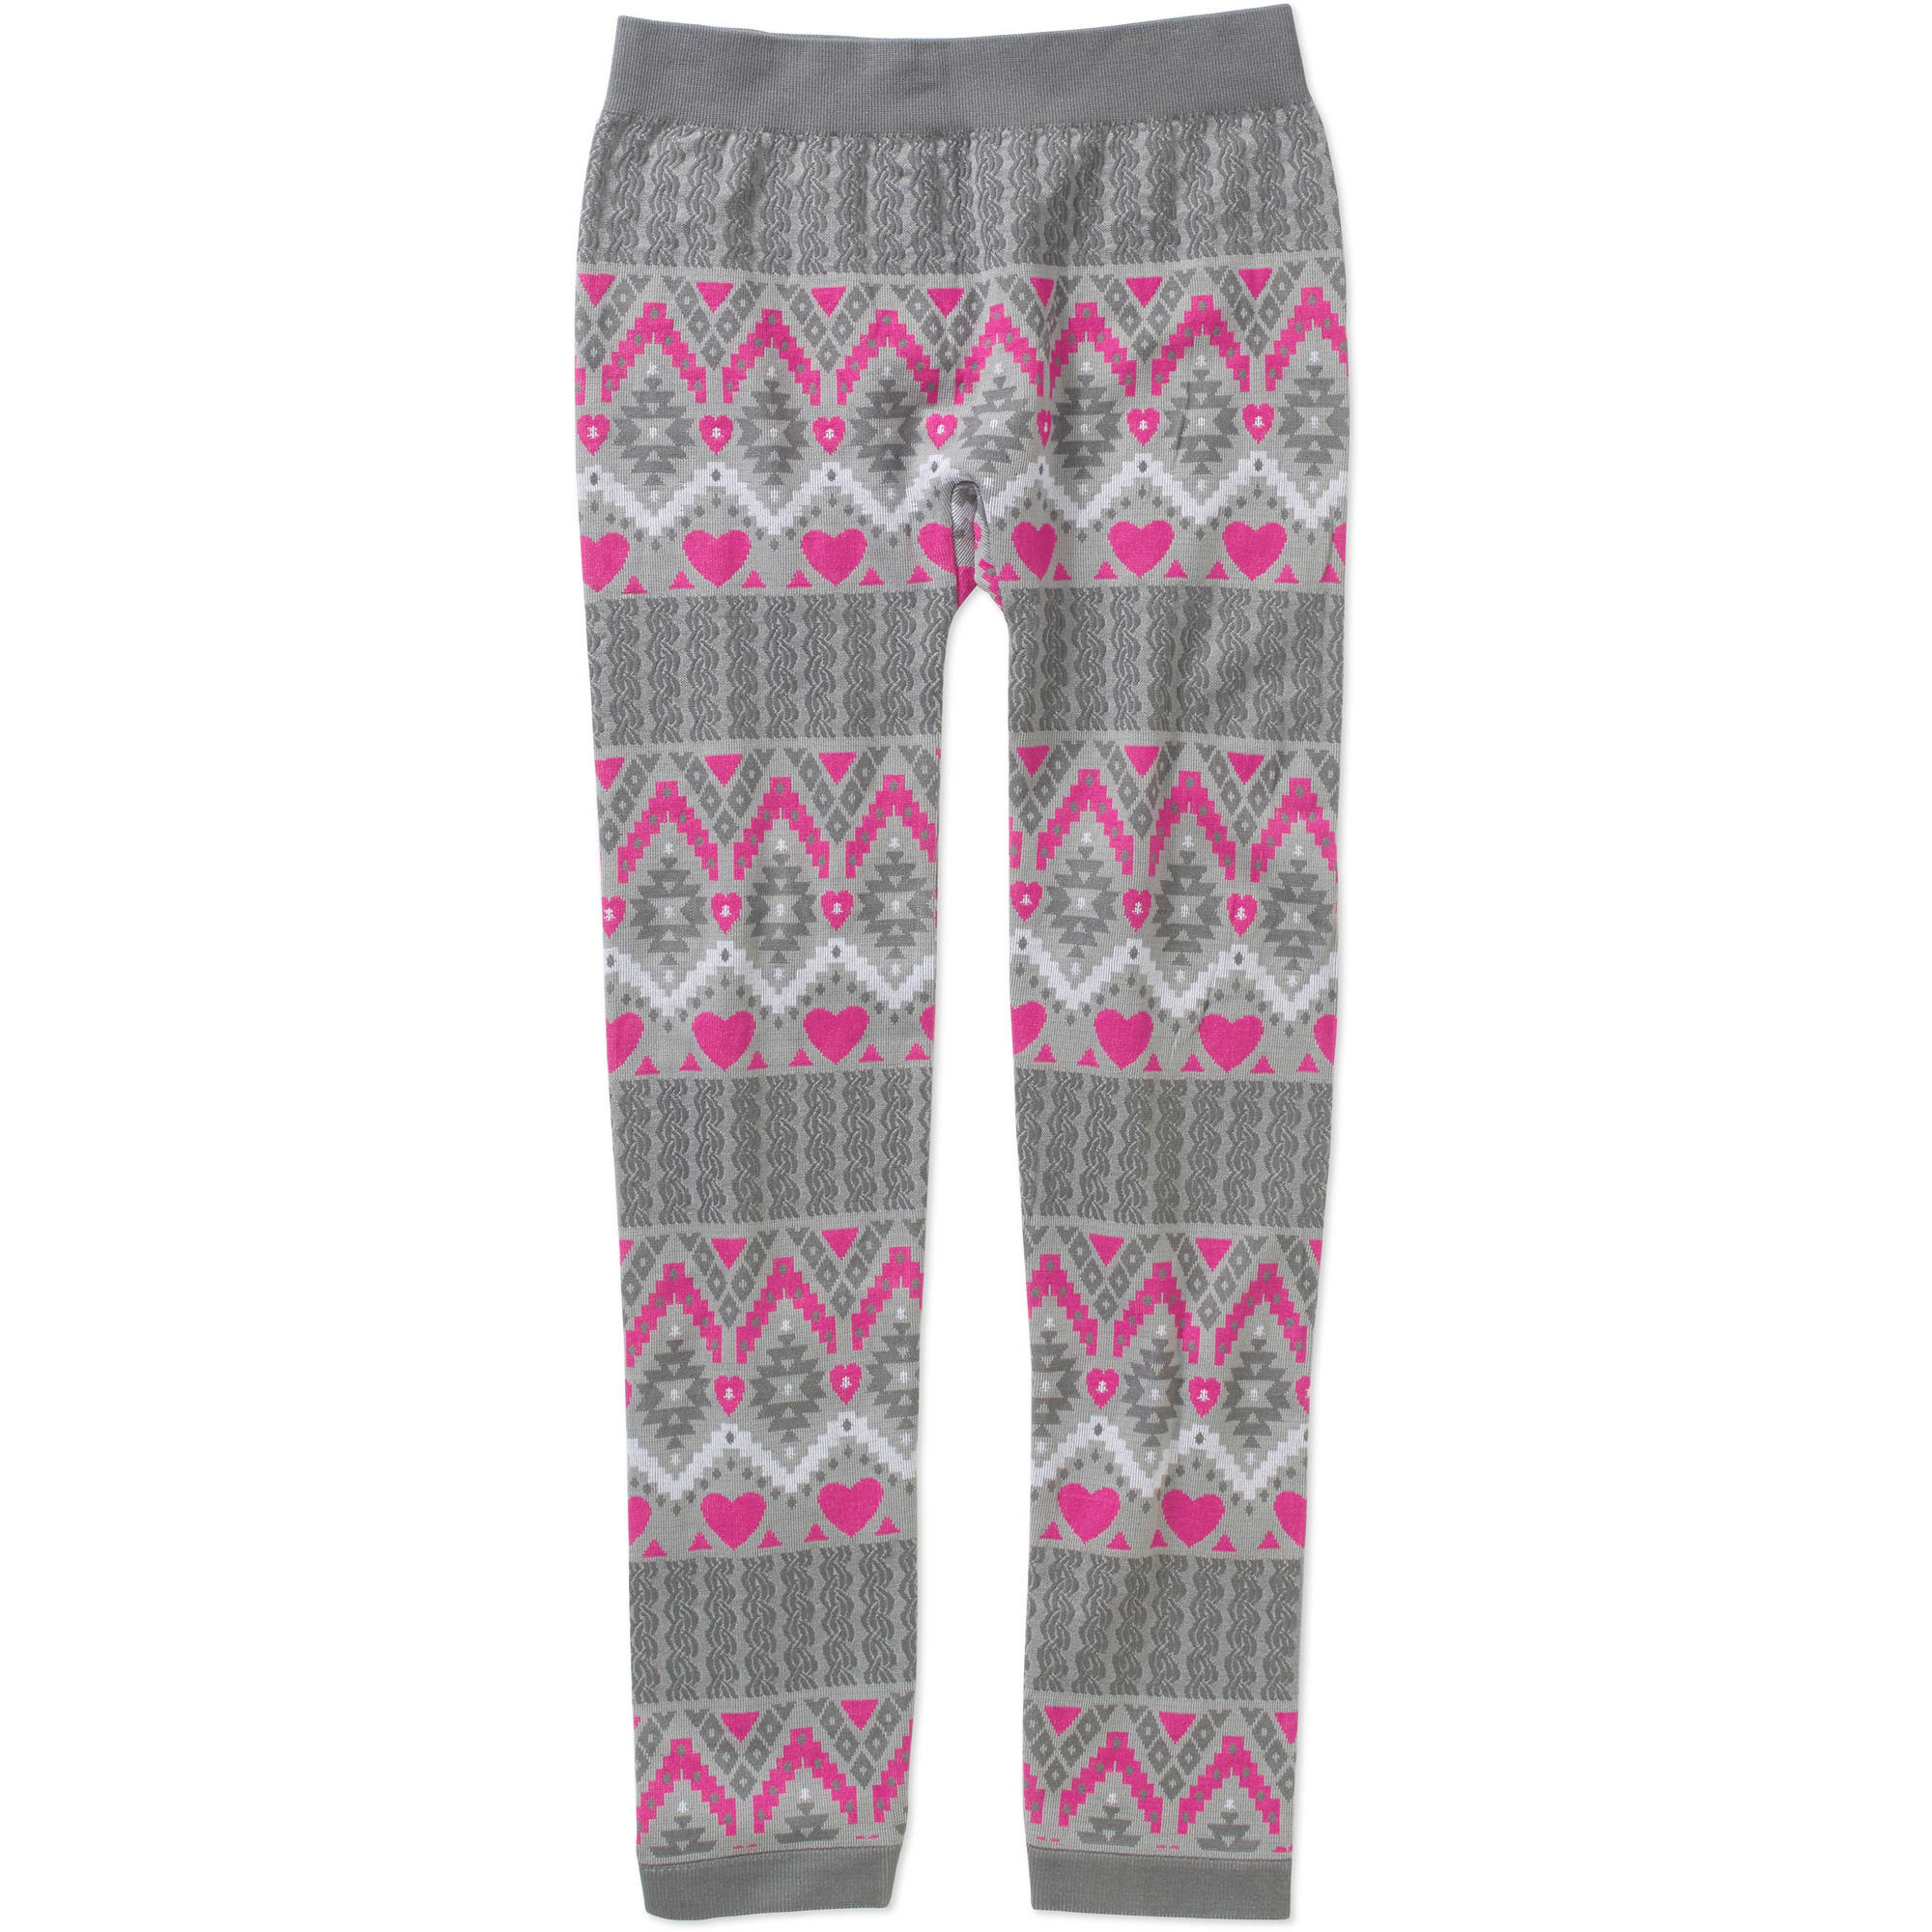 Faded Glory Girls' Essential Textured Multi-Patterned Leggings